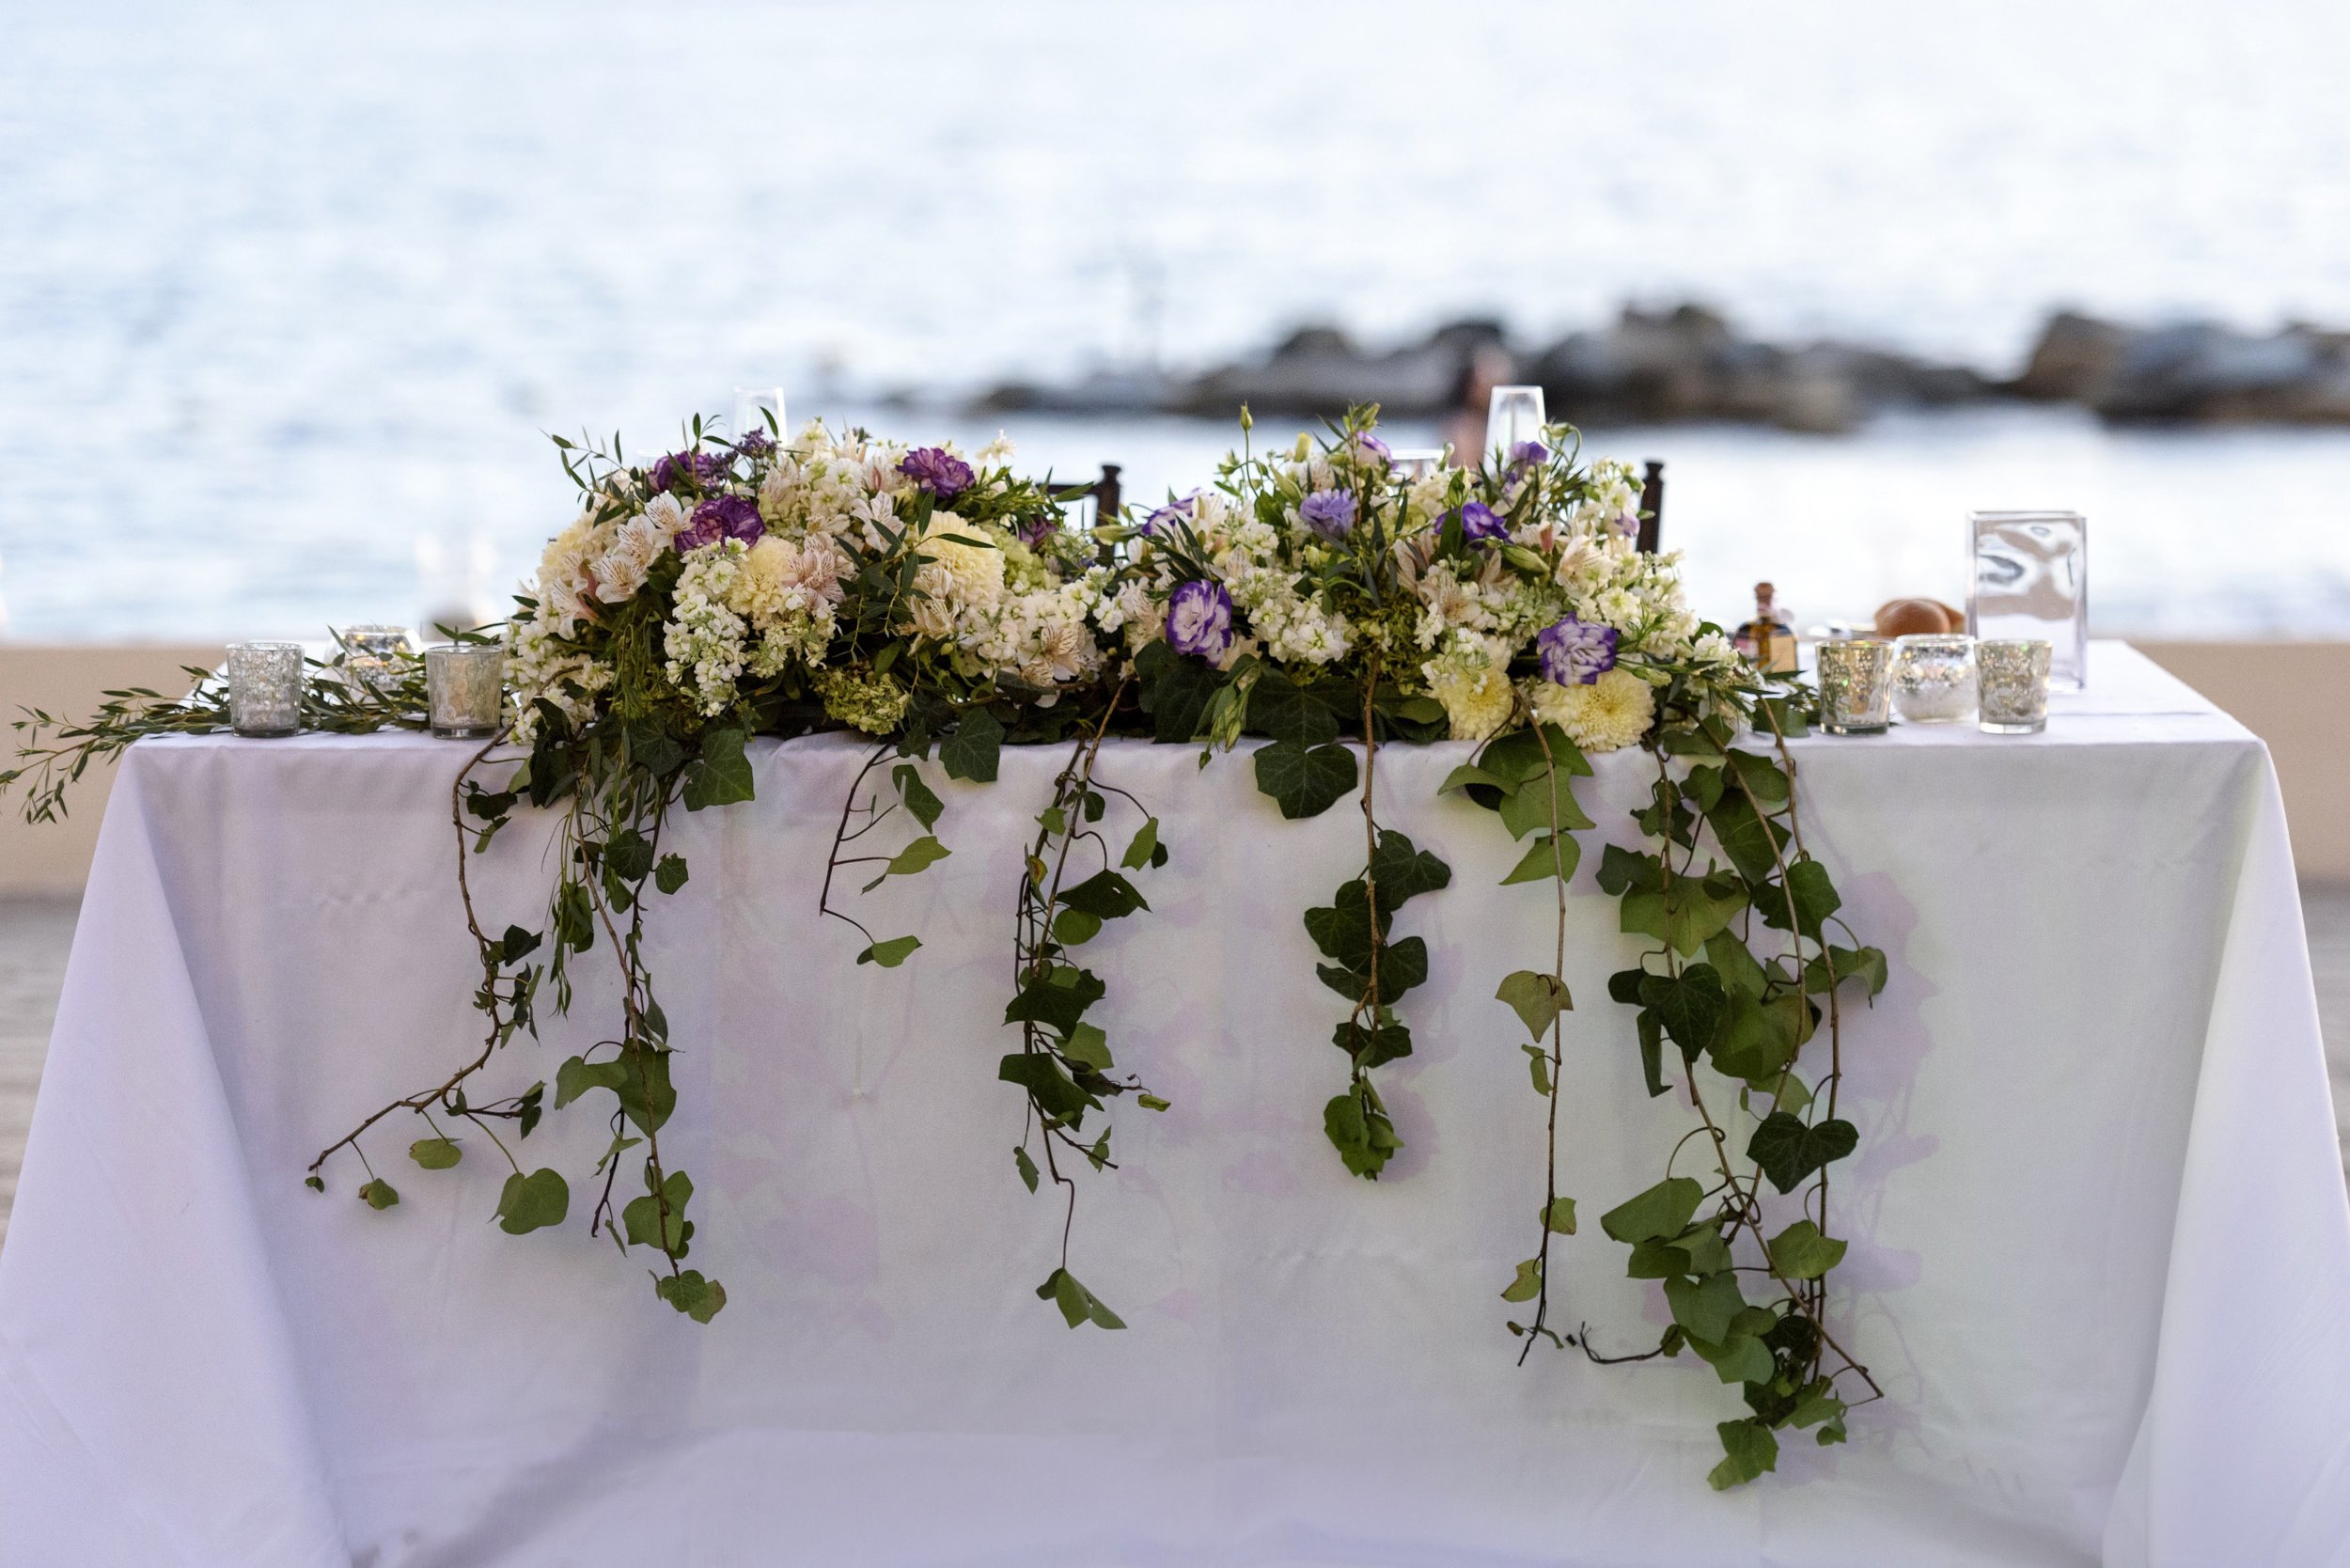 Mexico Beach Wedding Sweetheart Table Centerpiece with Ivy and Flowers